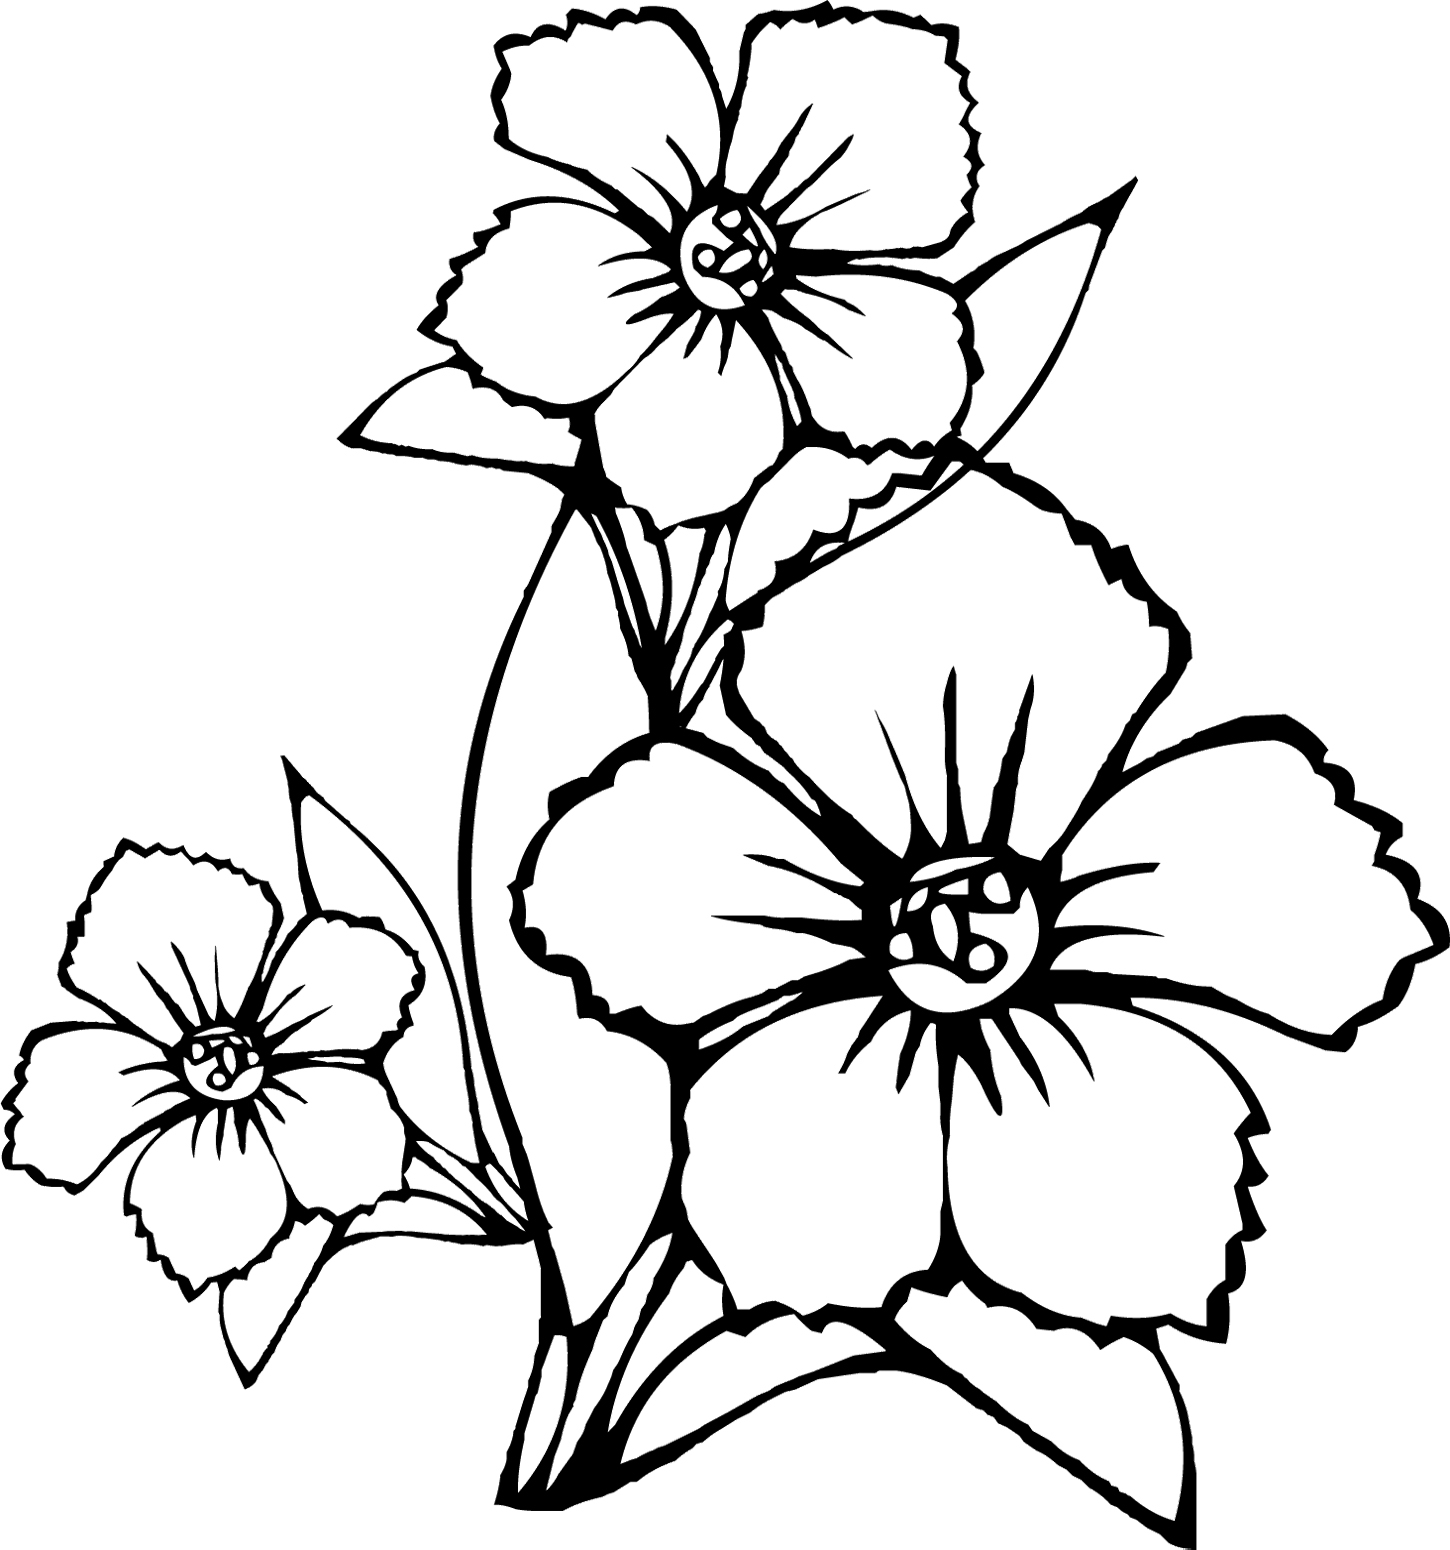 coloring outline images of flowers vanilla flower drawing at getdrawings free download flowers of images coloring outline